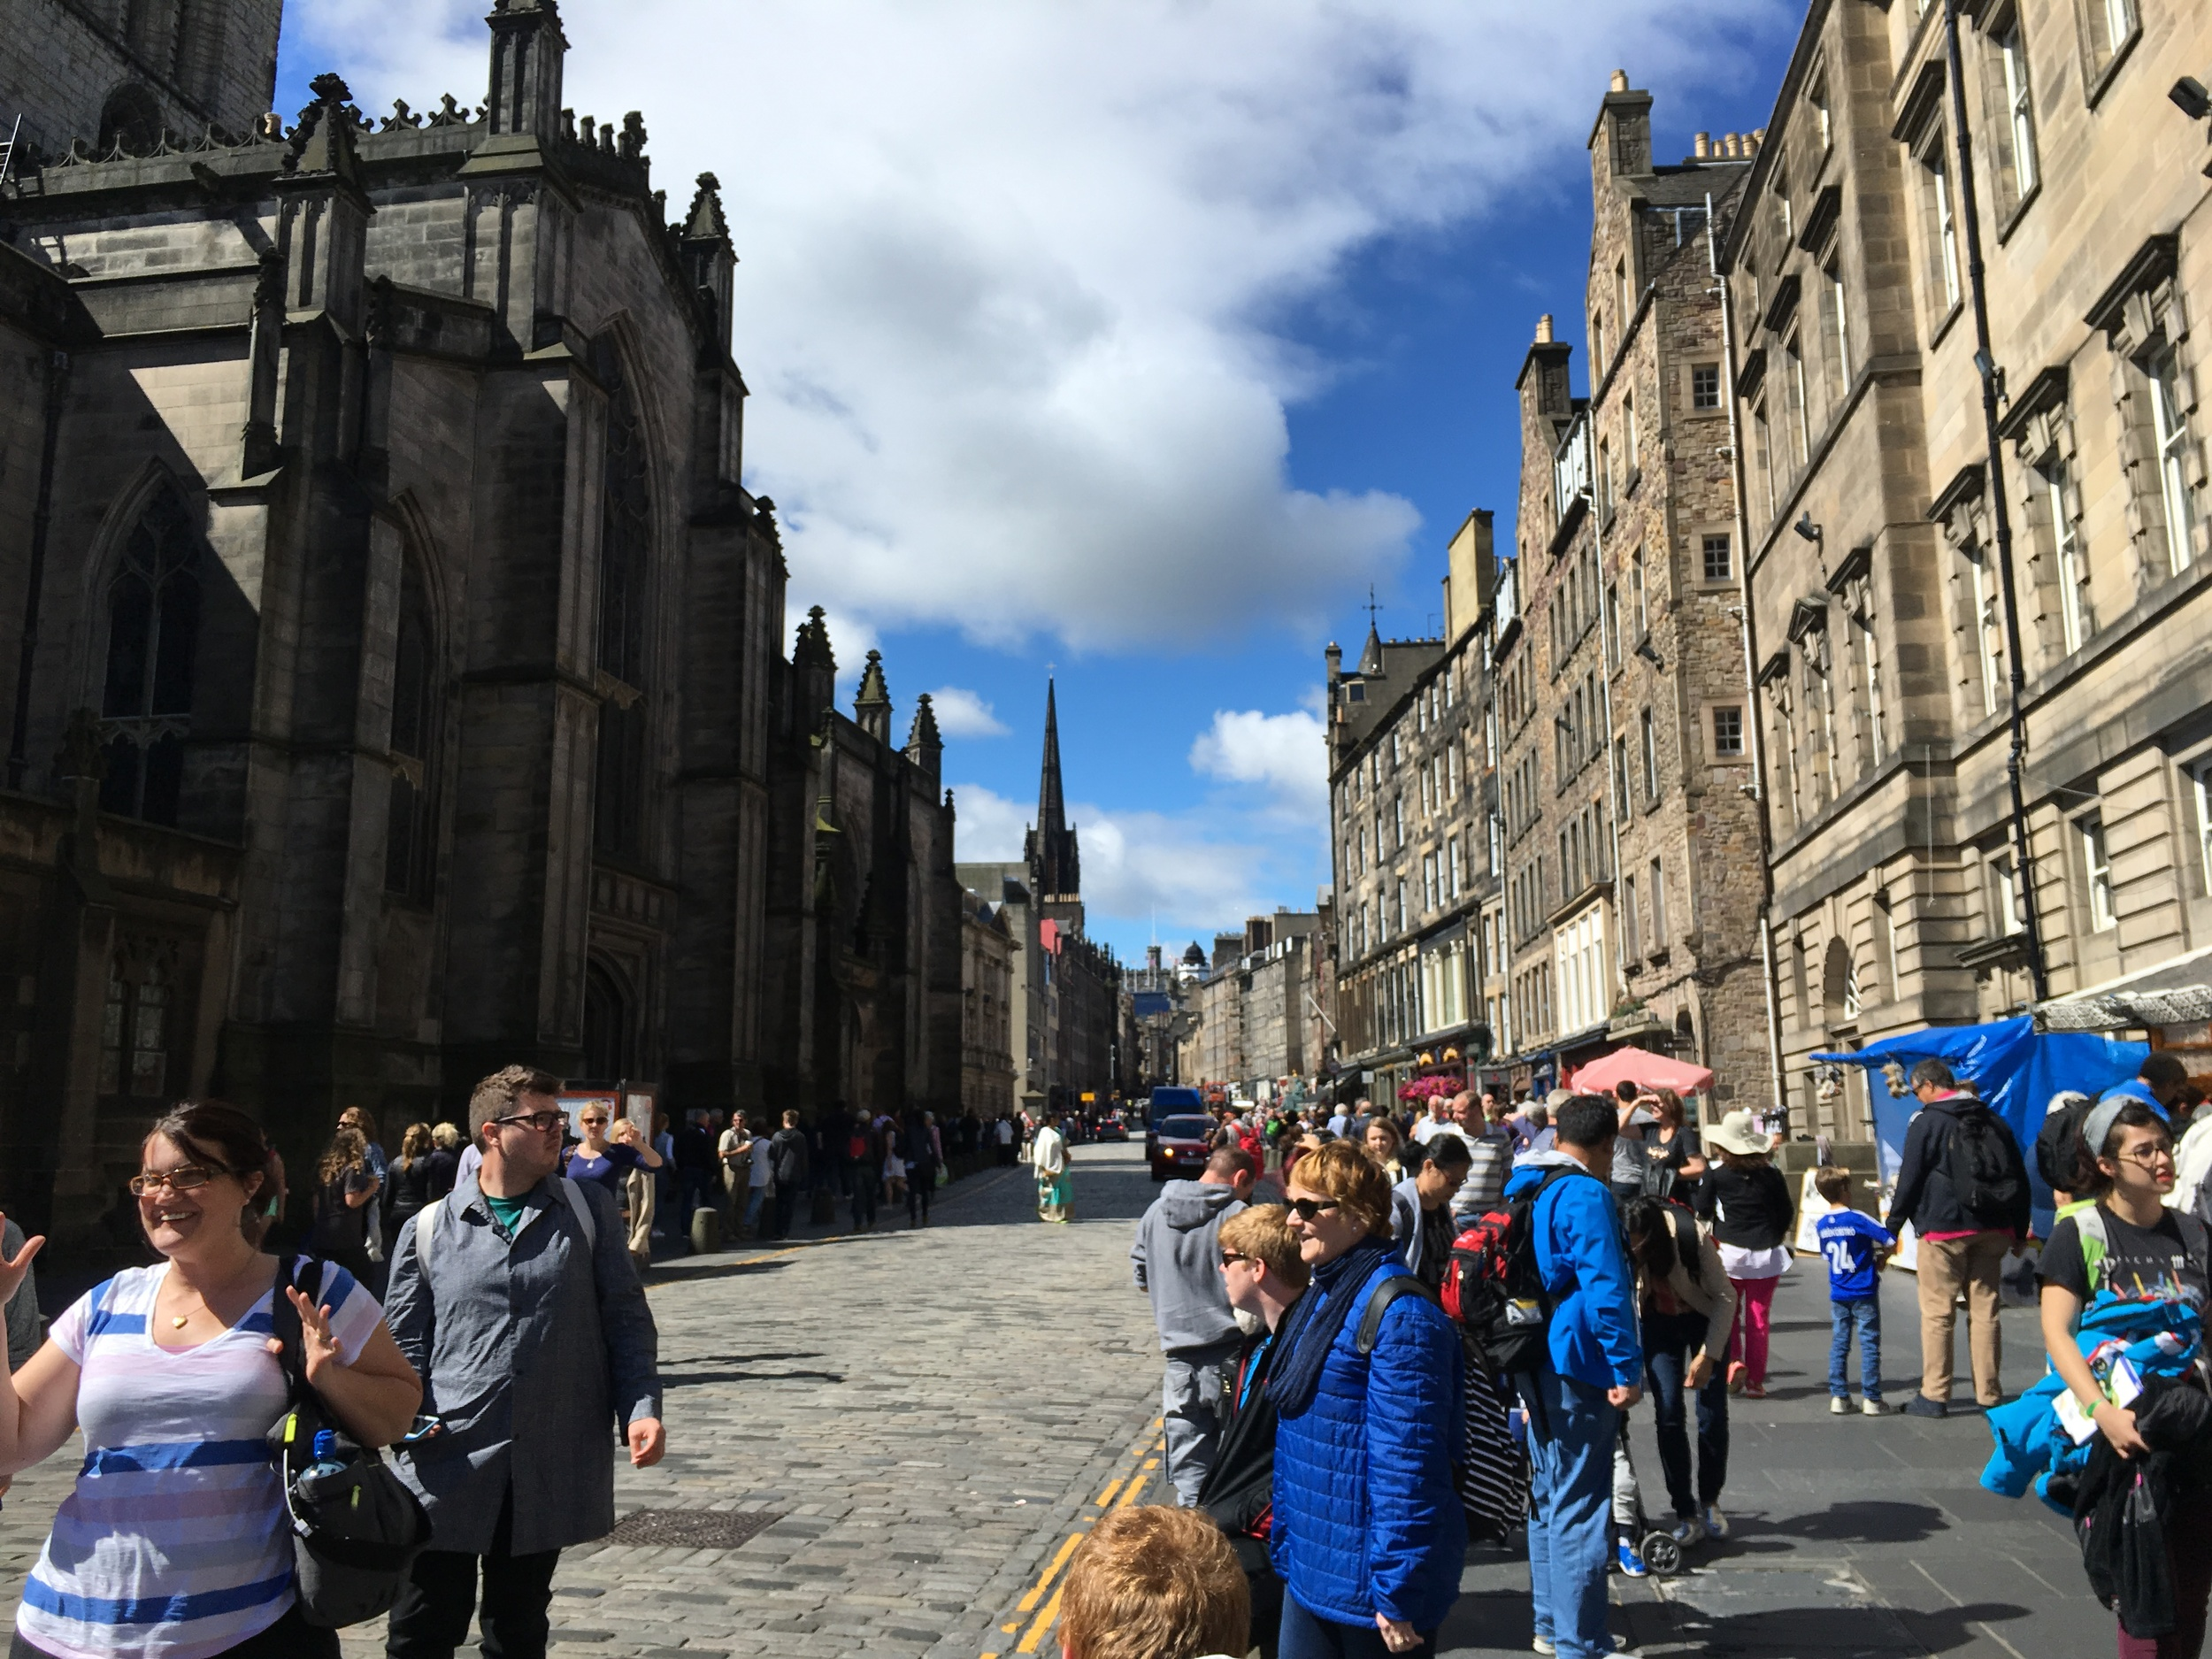 View Up the Royal Mile